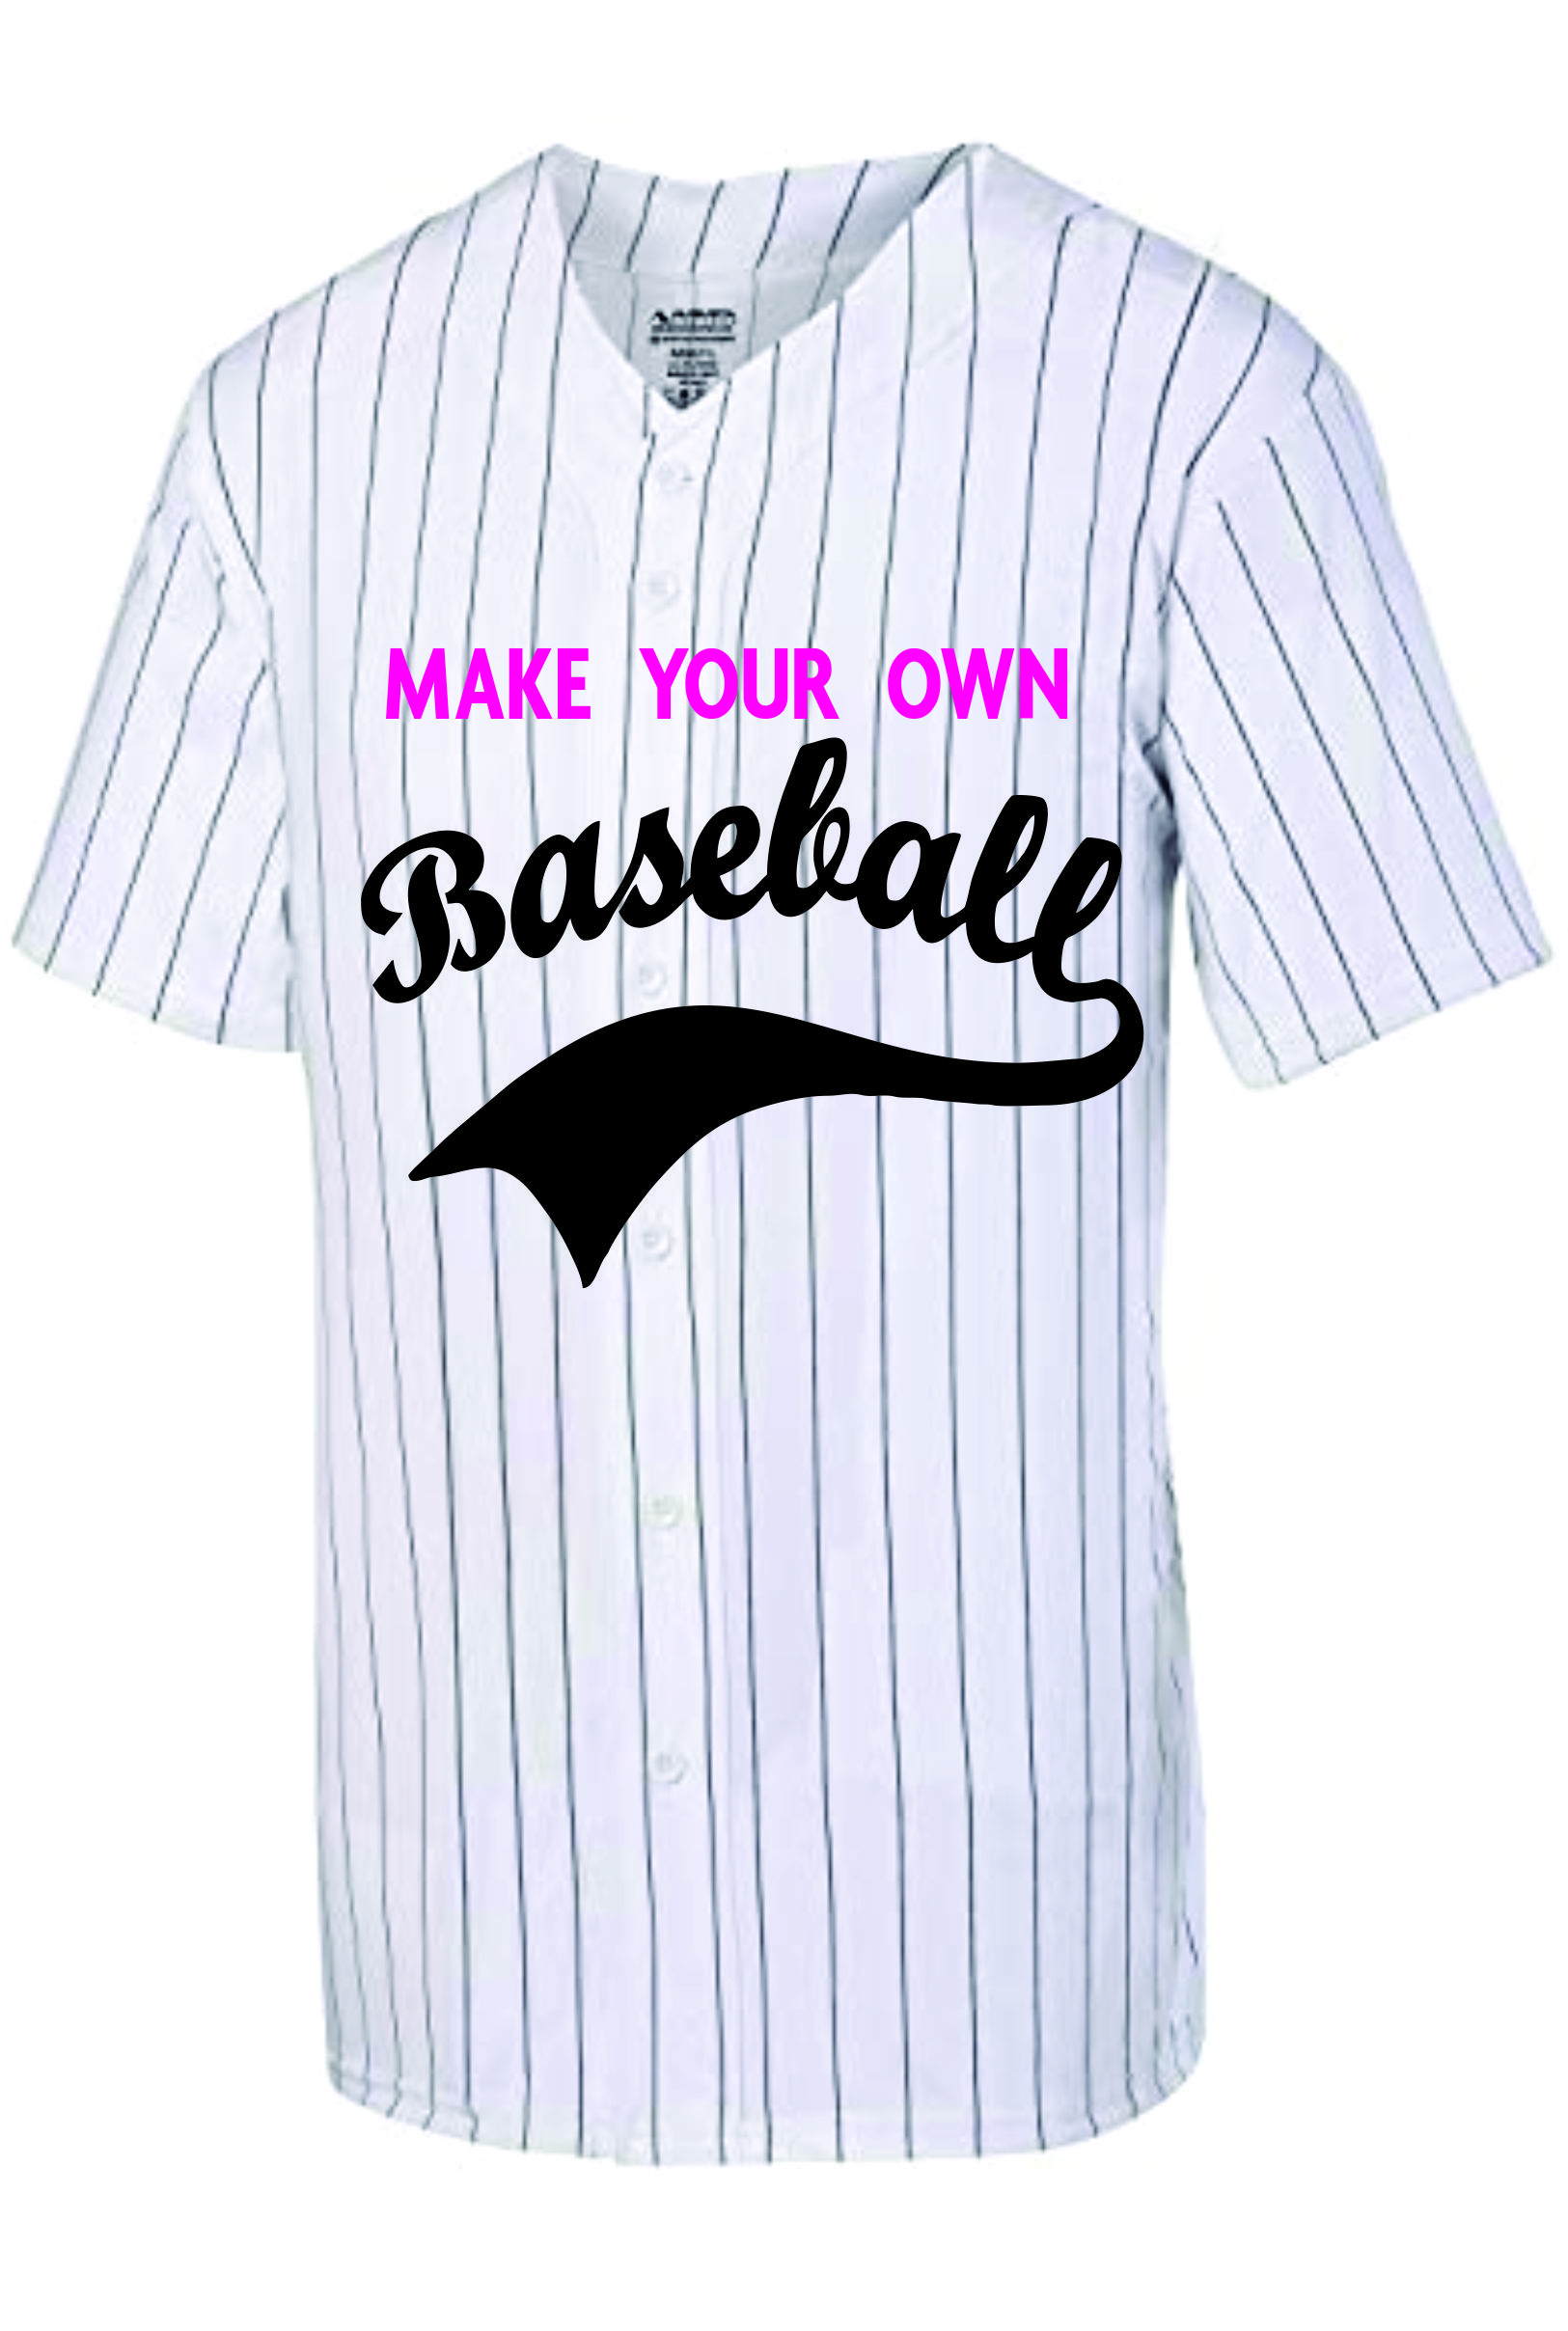 Customized  | Pinstripe Baseball jersey | No Minimium Order